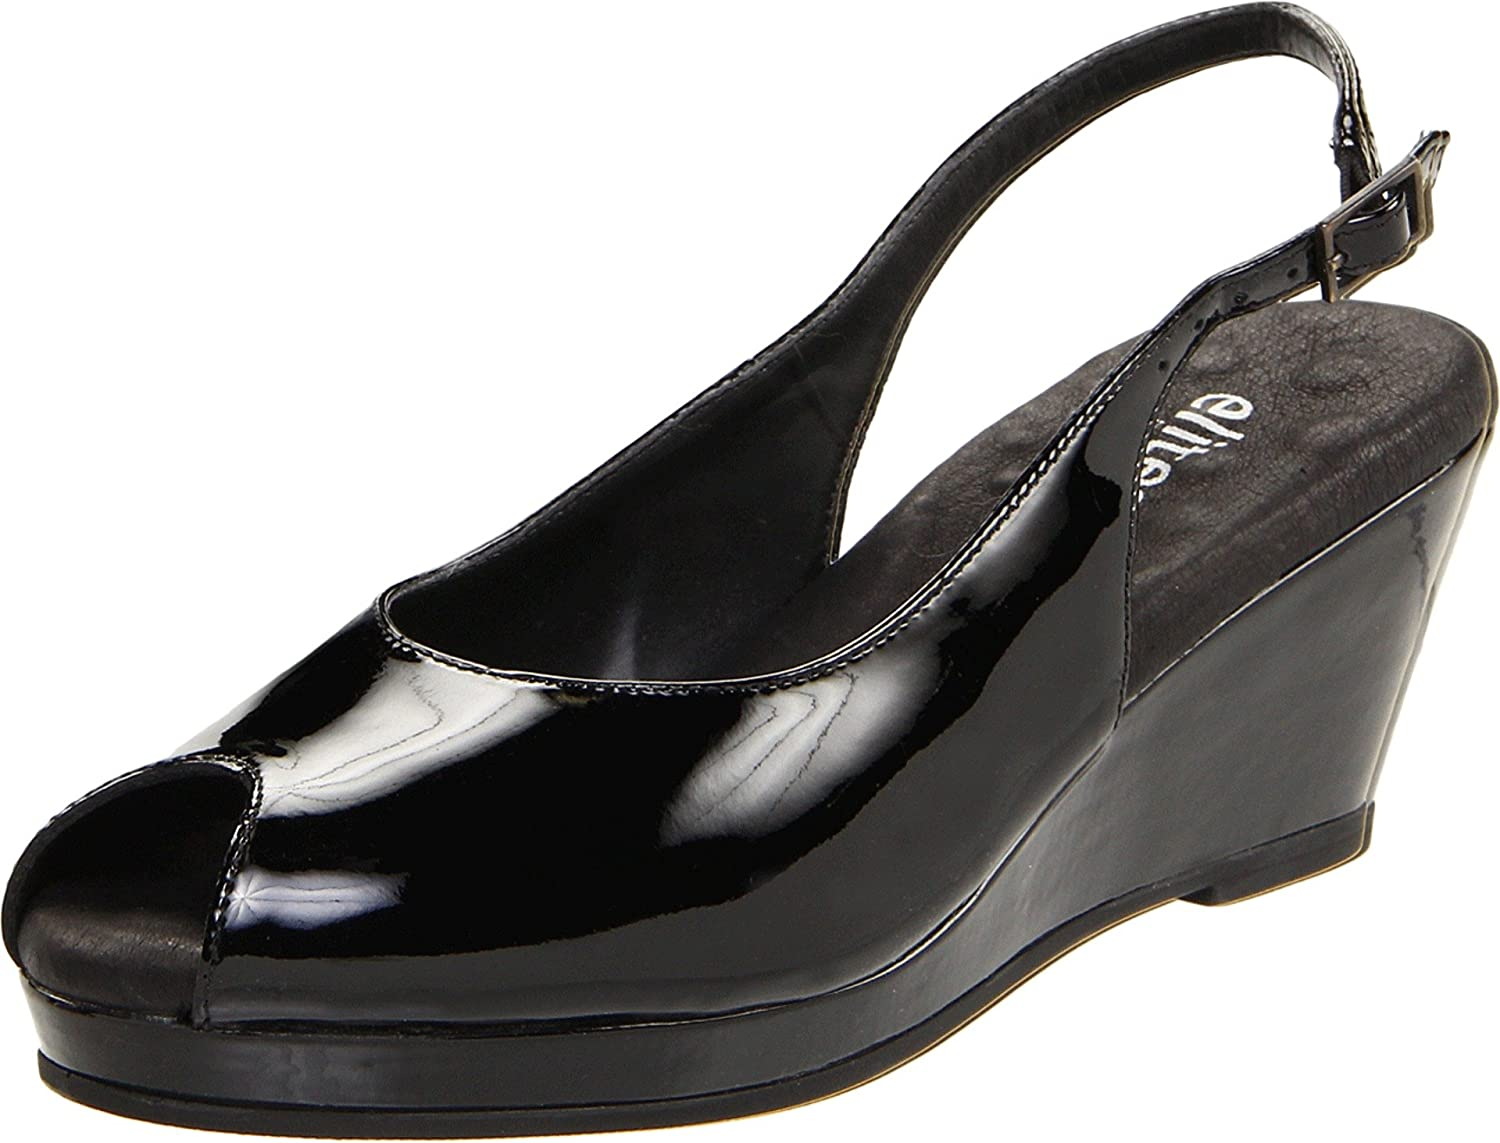 Walking Cradles Women's Natasha Pump B001A38SBY 7 W US|Black Patent